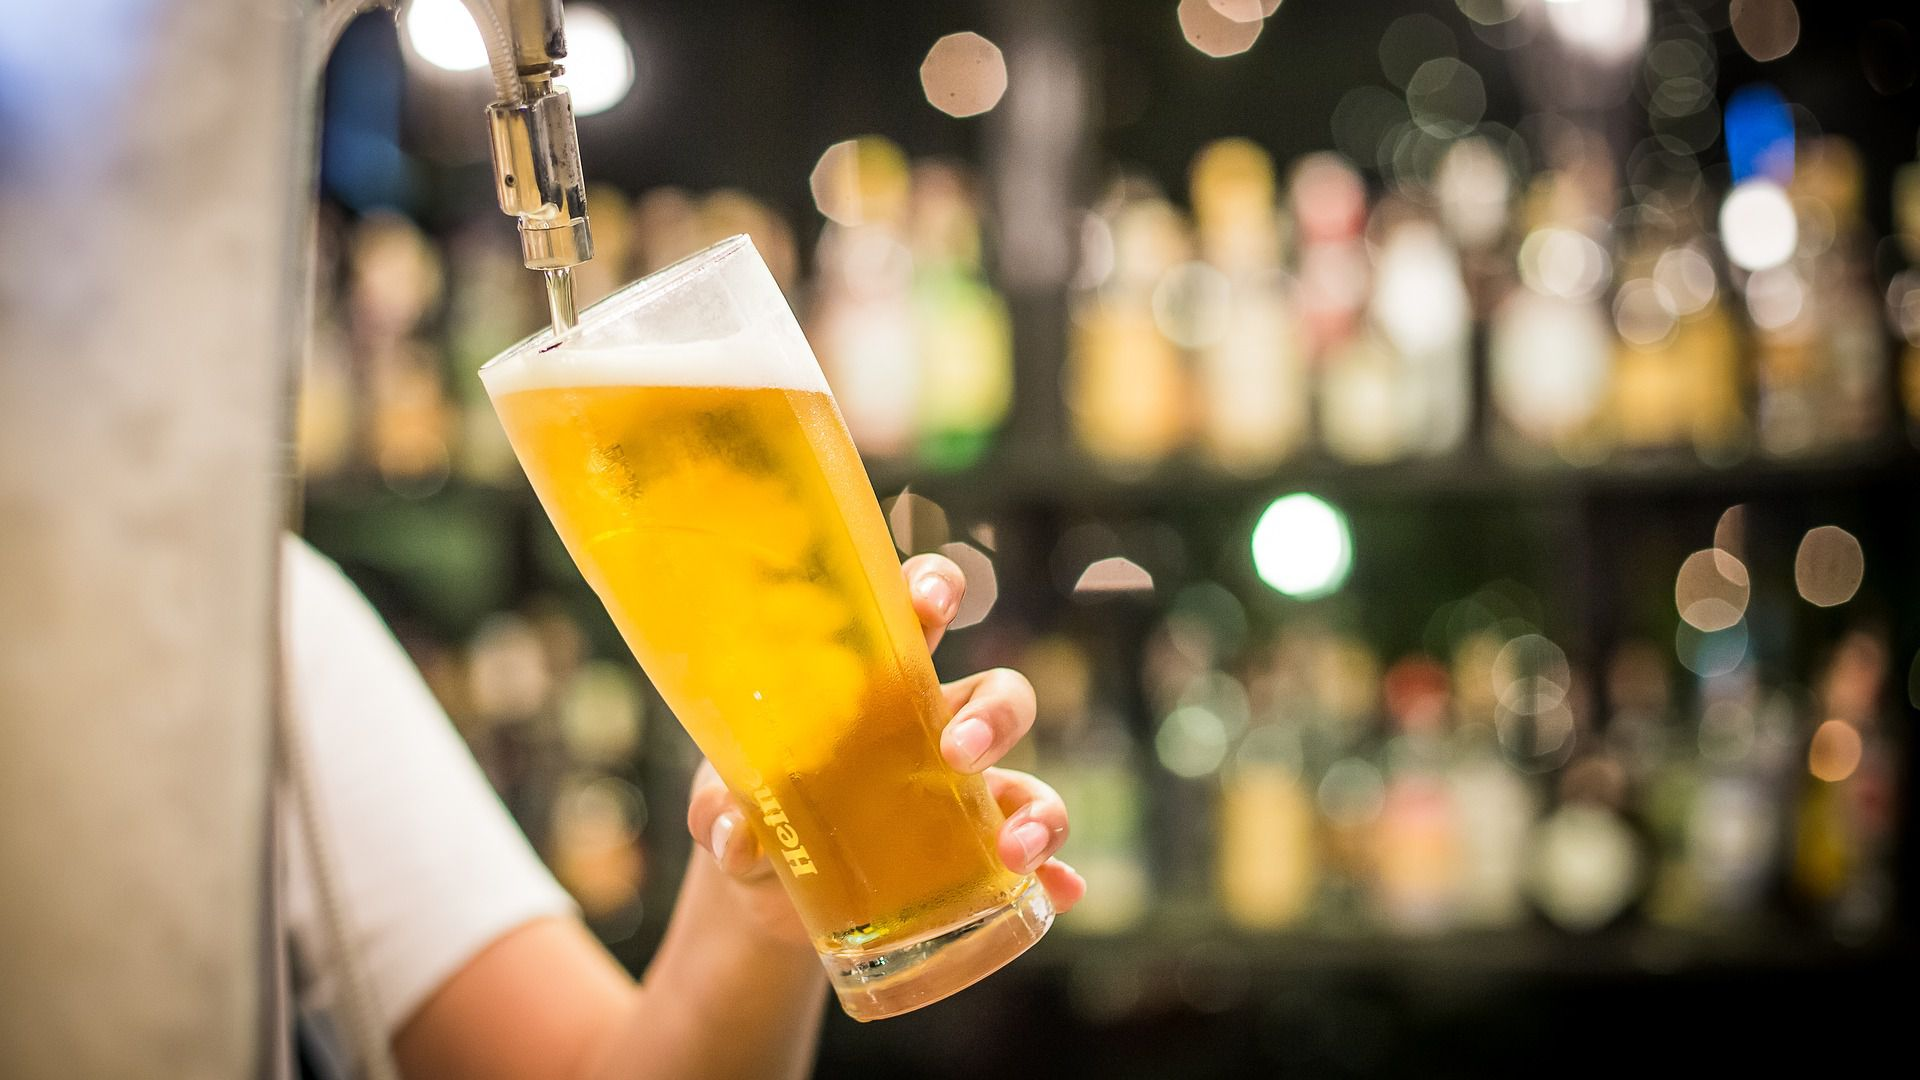 Legal Age To Drink Alcohol In Toronto